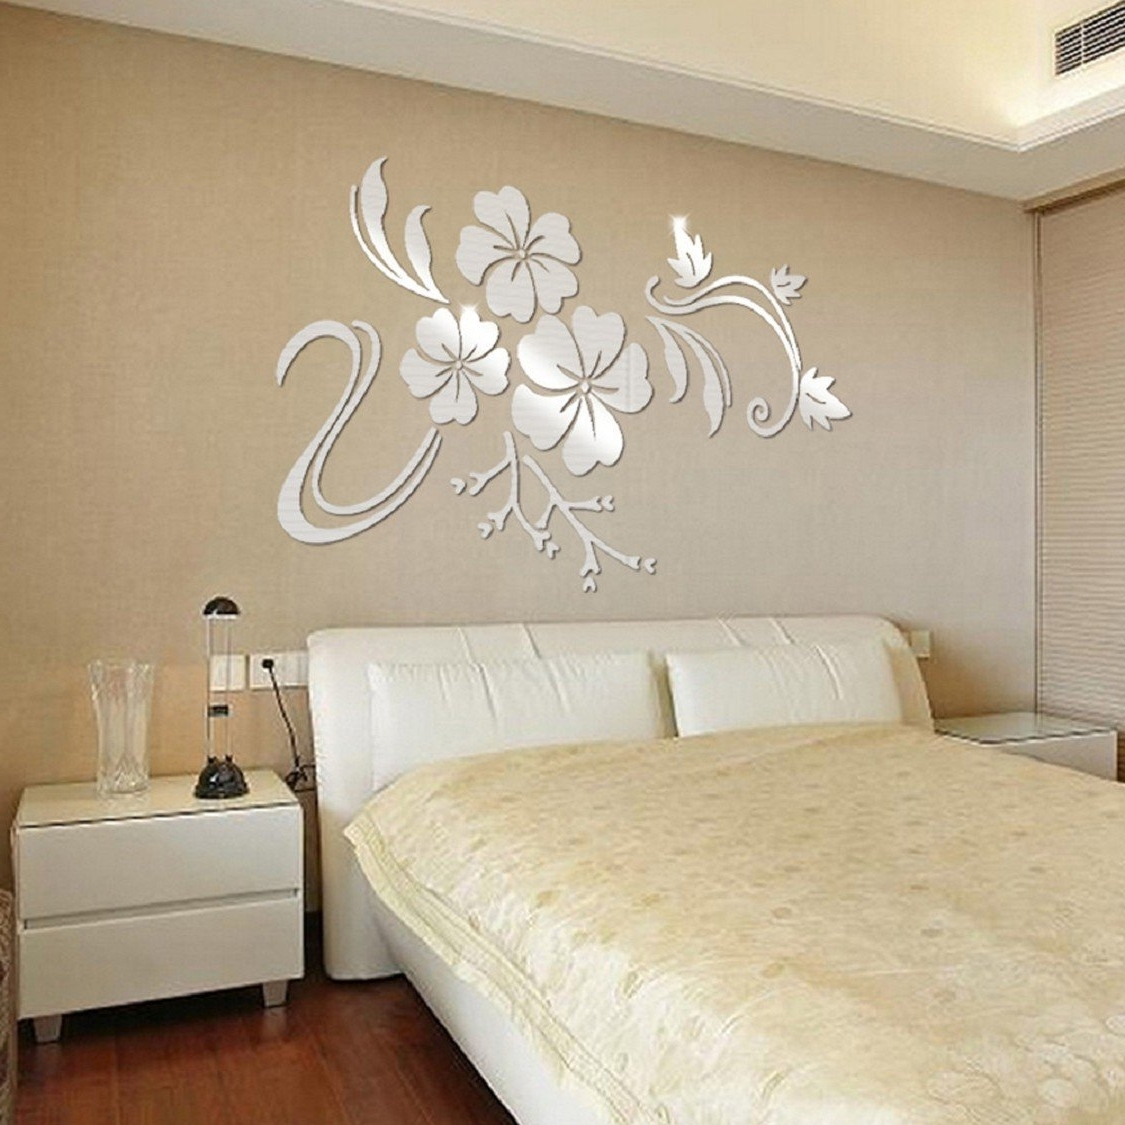 Bedroom 3D Wall Art For Most Recent Ikevan 1Set Acrylic Art 3D Mirror Flower Wall Stickers Diy Home (View 4 of 15)